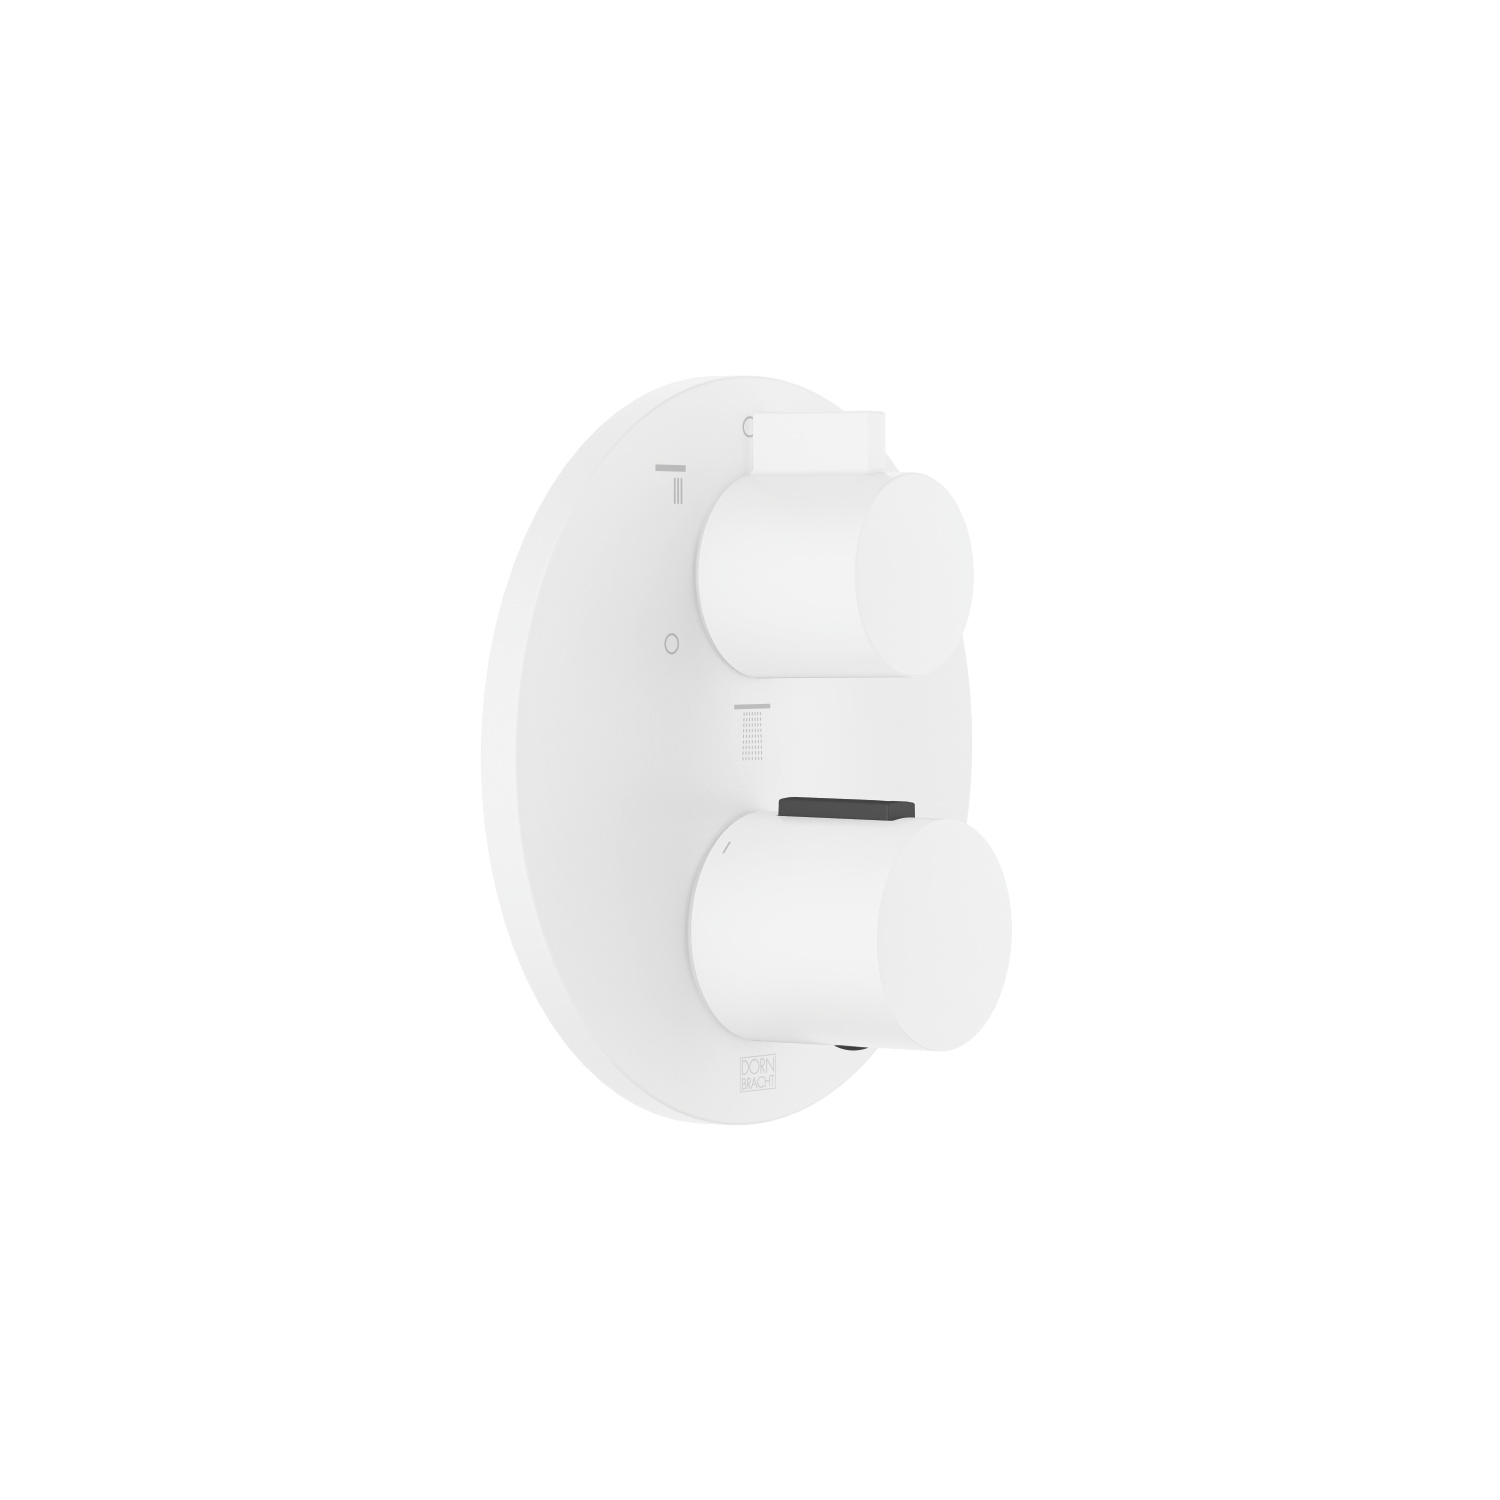 Concealed thermostat with three-way volume control - white matte - 36 427 970-10